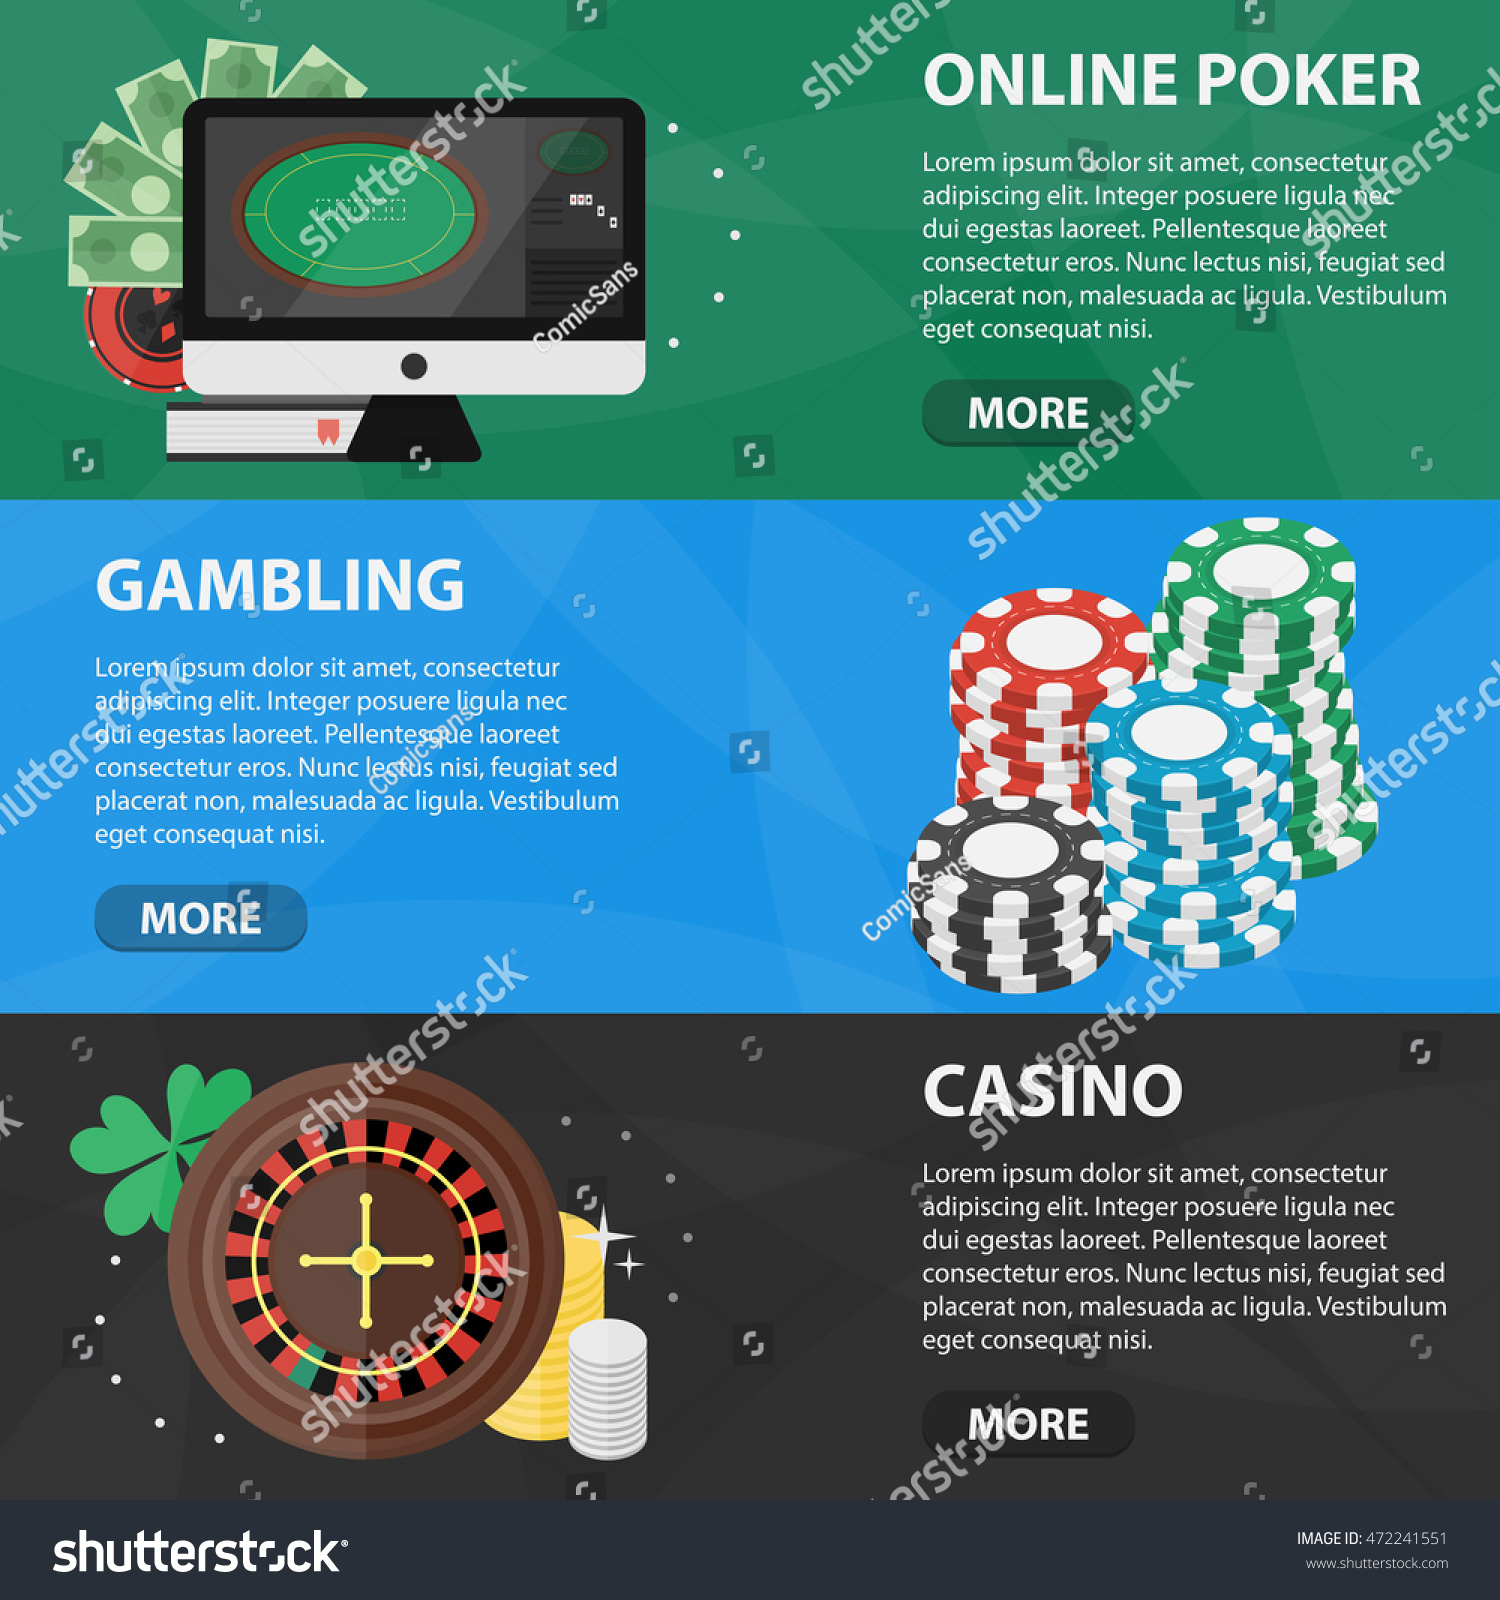 Non gambling online poker how to have luck in gambling